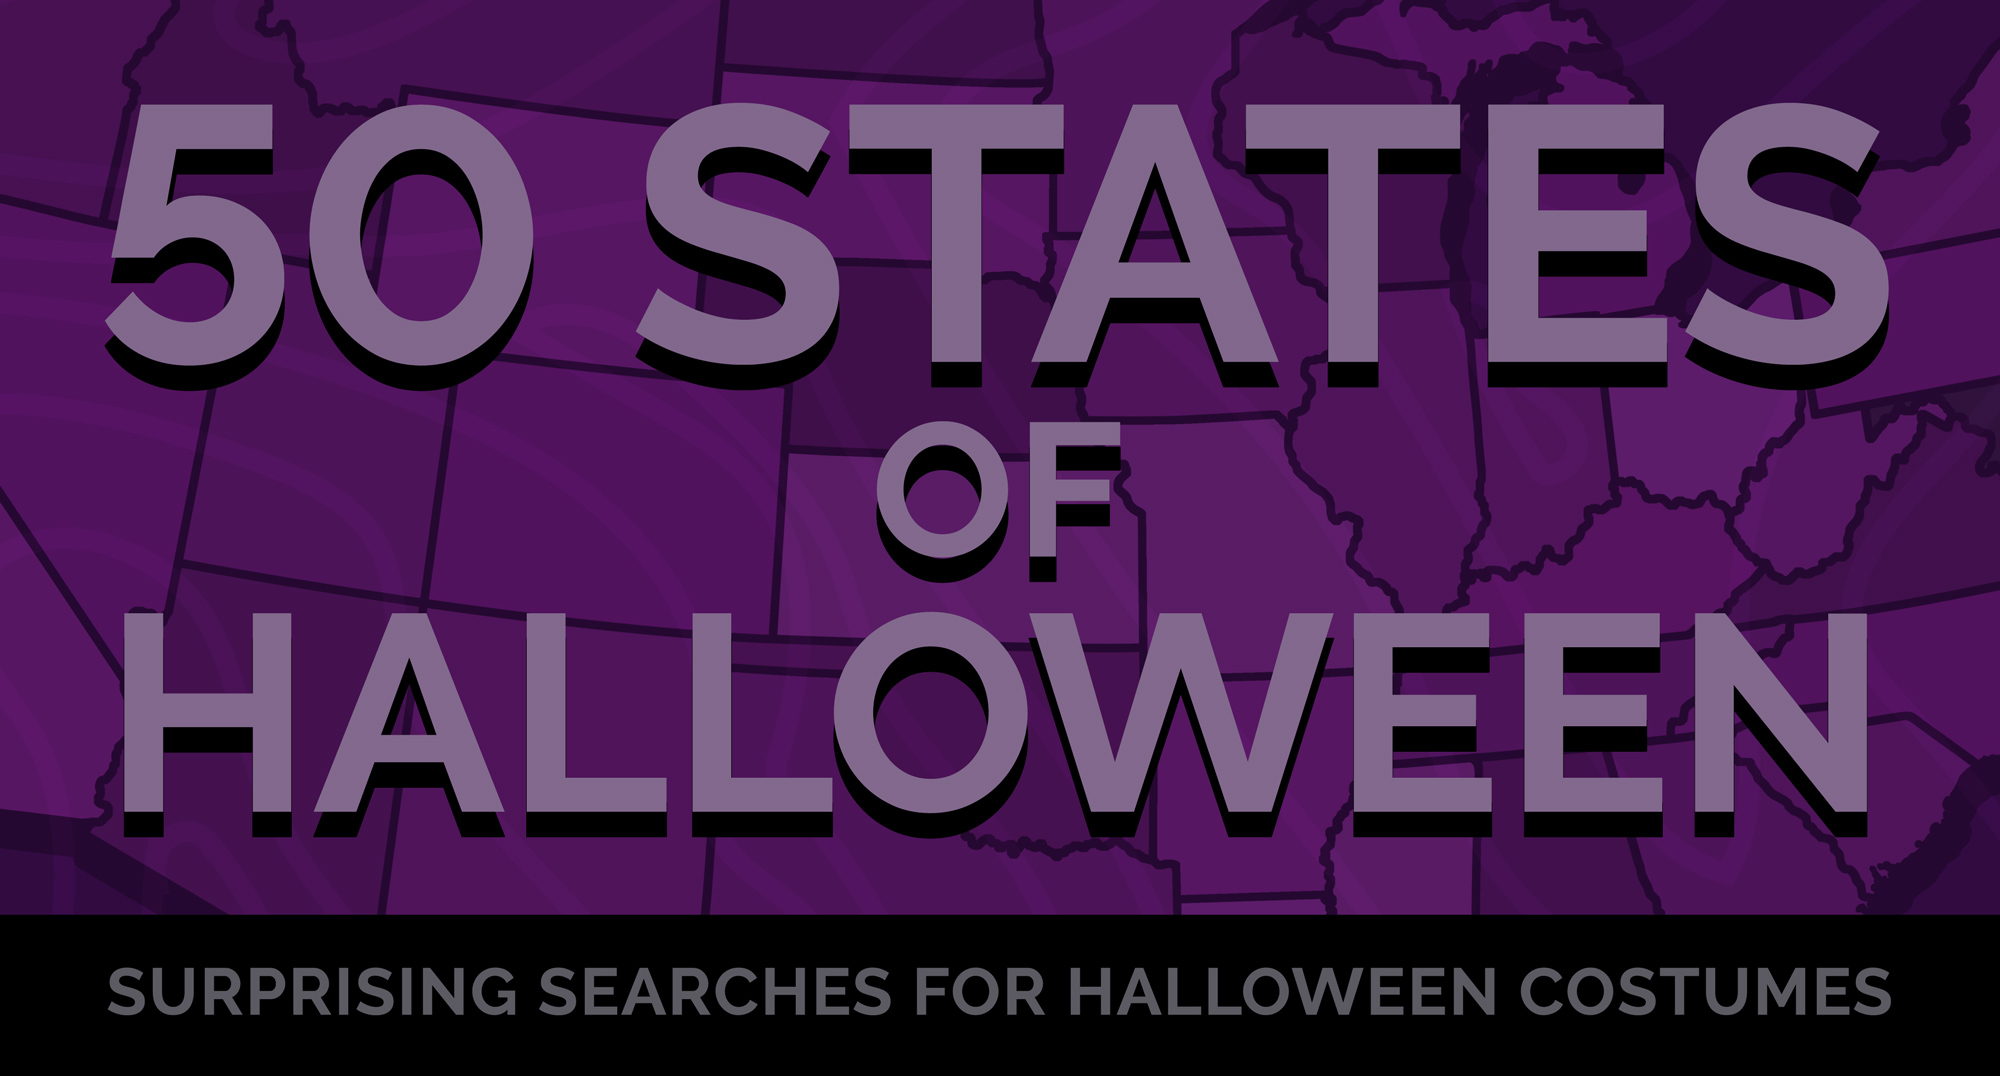 50 States of Halloween: Surprising Searches for Halloween Costumes